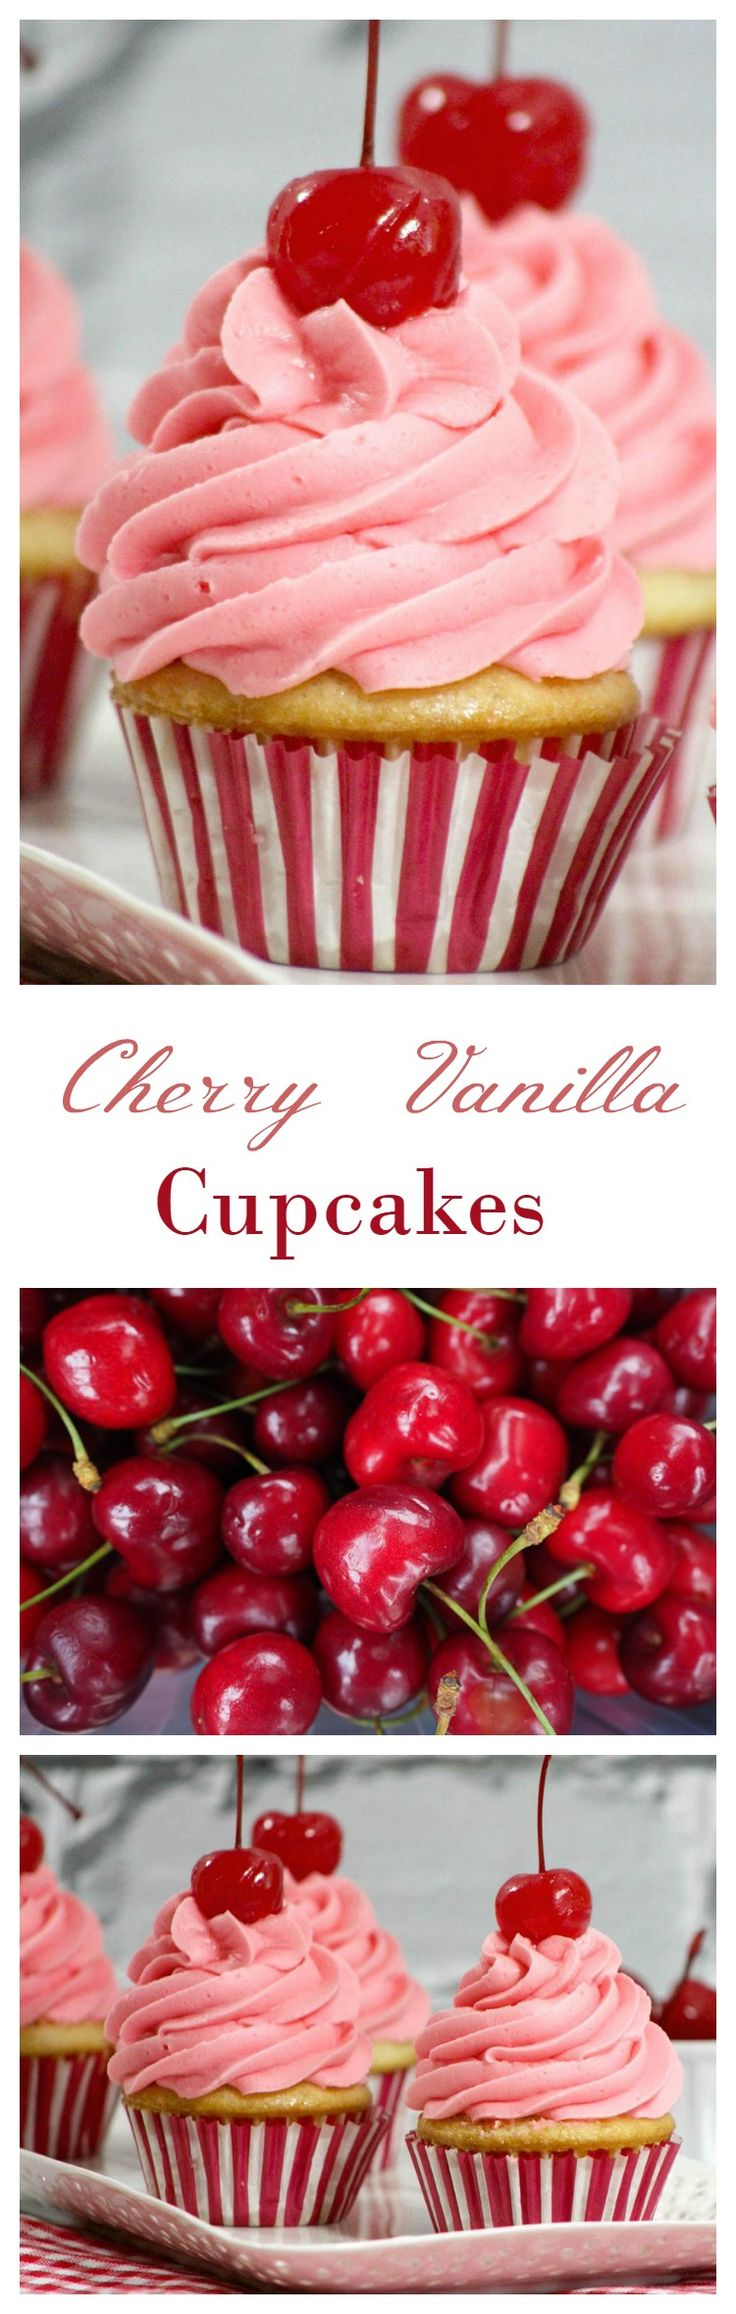 Looking for the perfect Canada Day recipe for your dessert table? These cherry vanilla cupcakes aren't just delicious, they look festive & fun too!